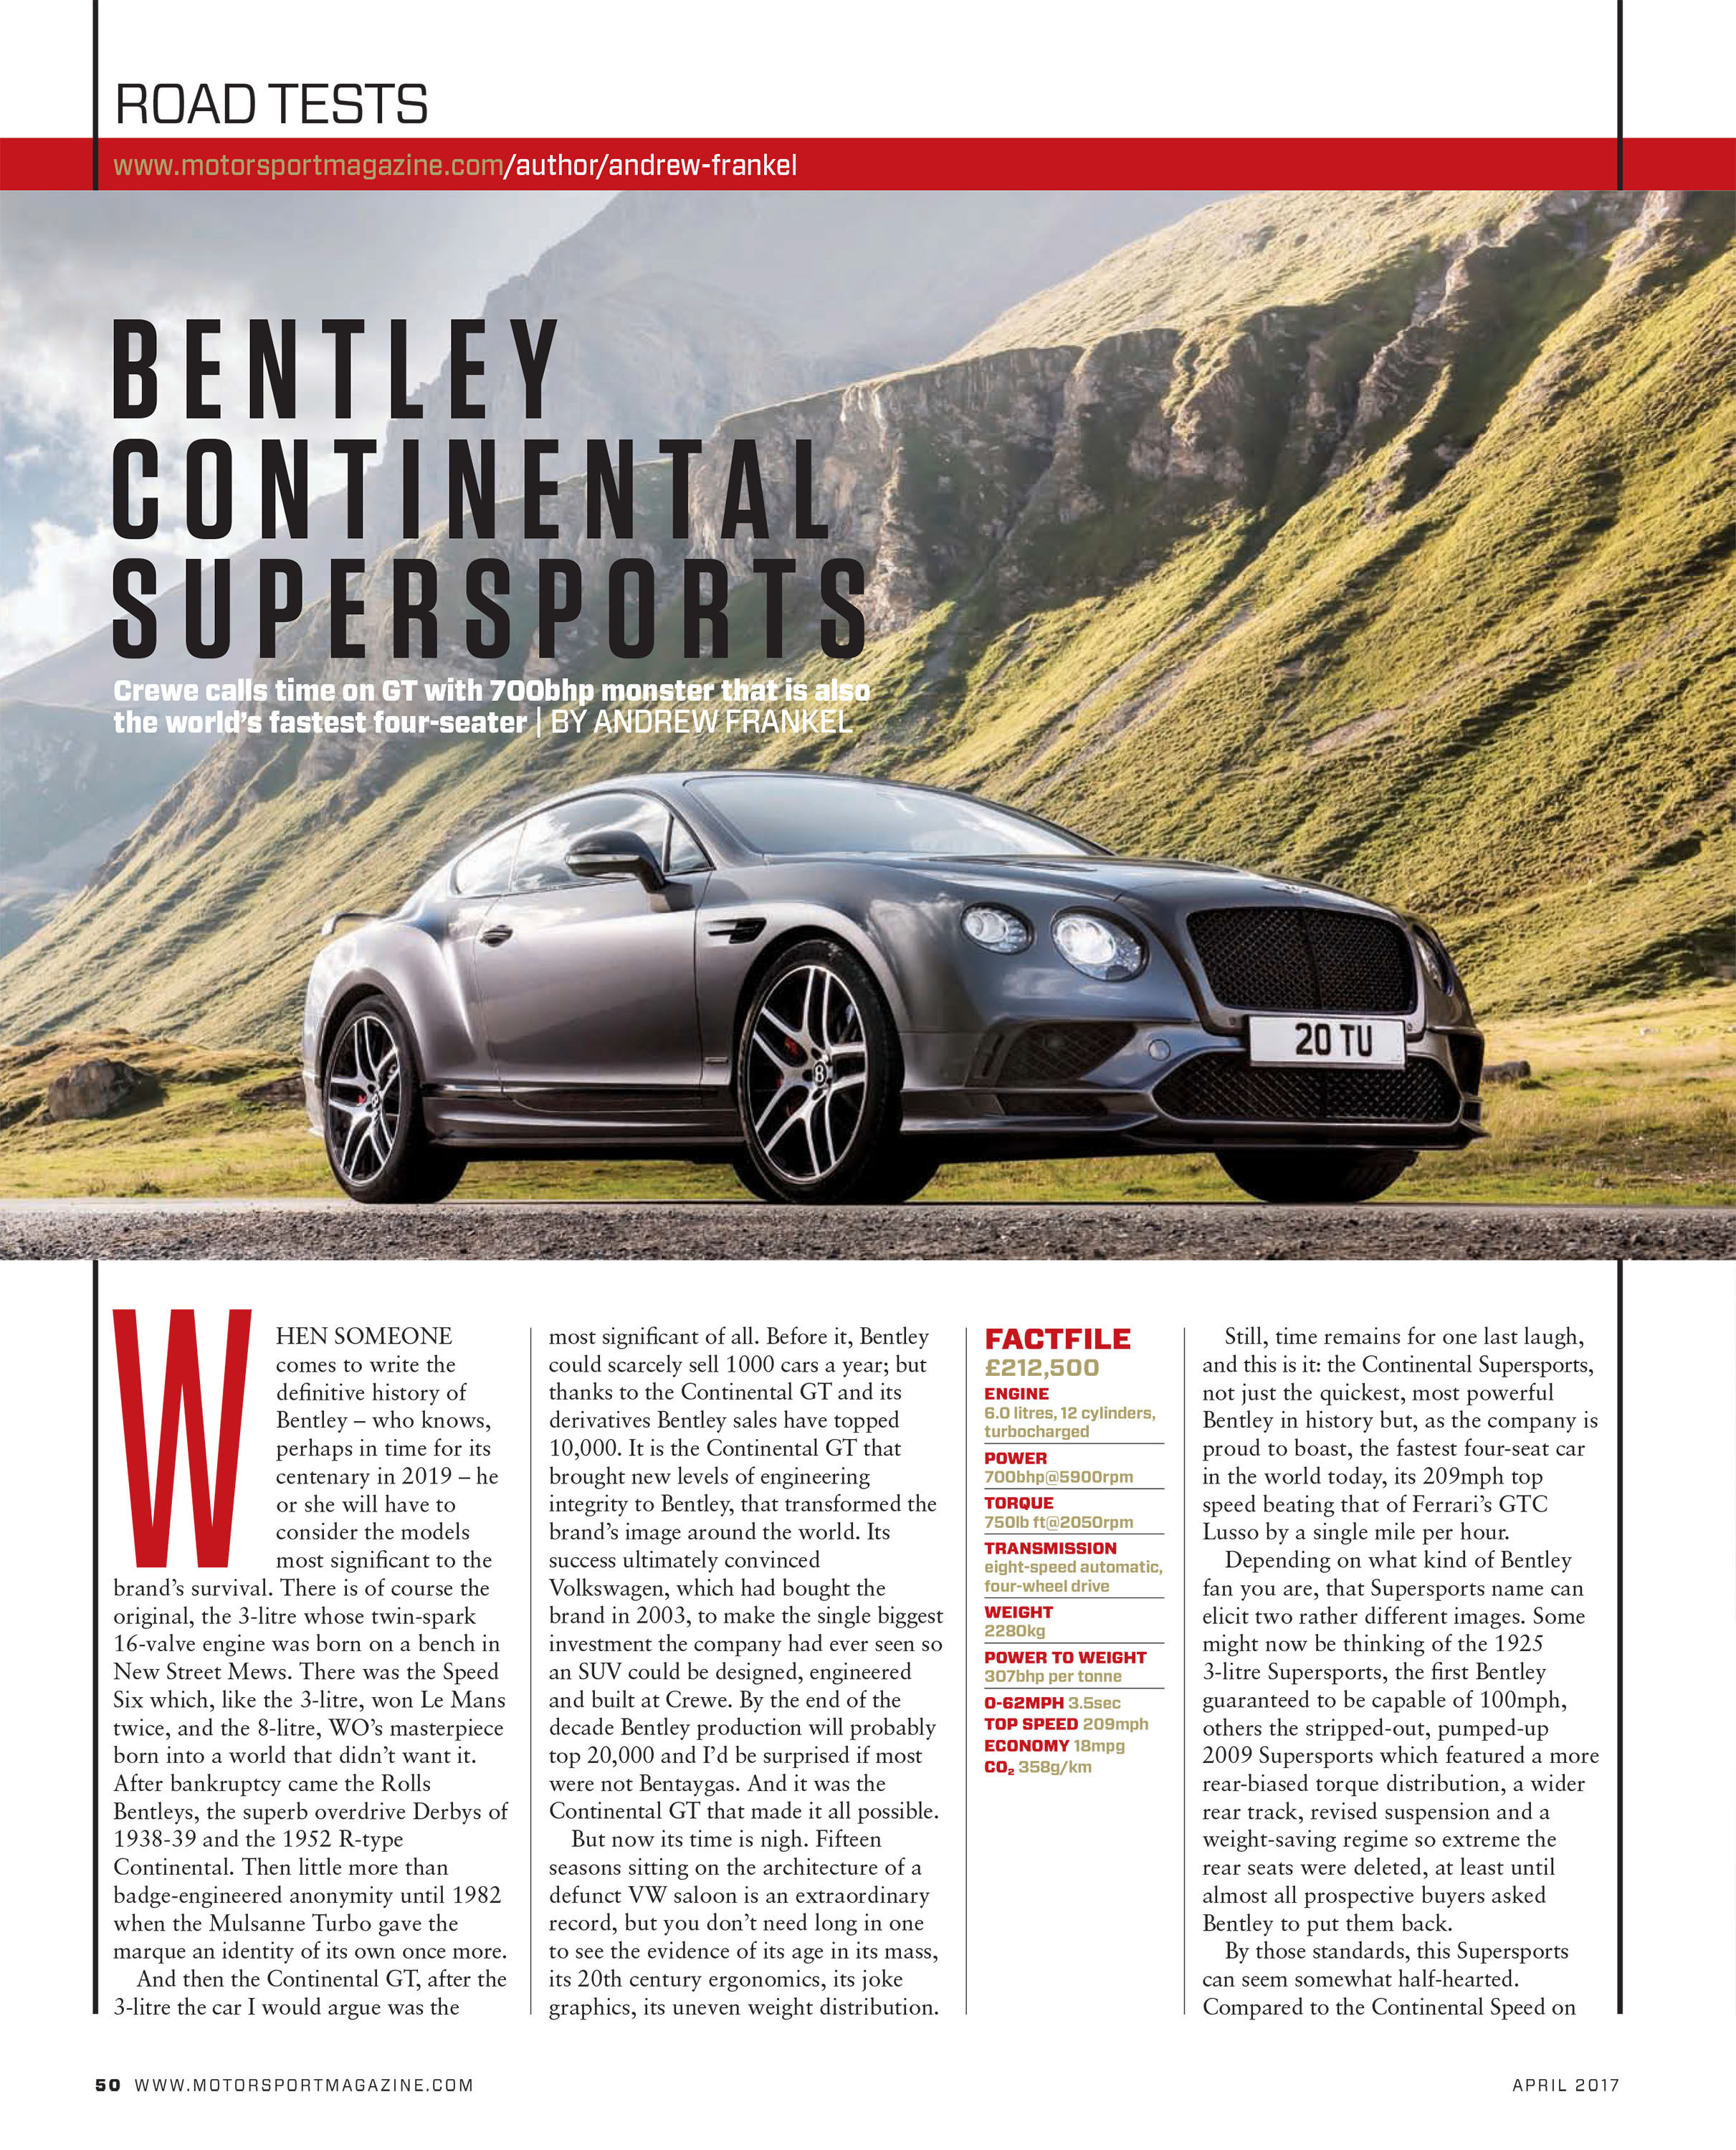 Road test: Bentley Continental Supersports image